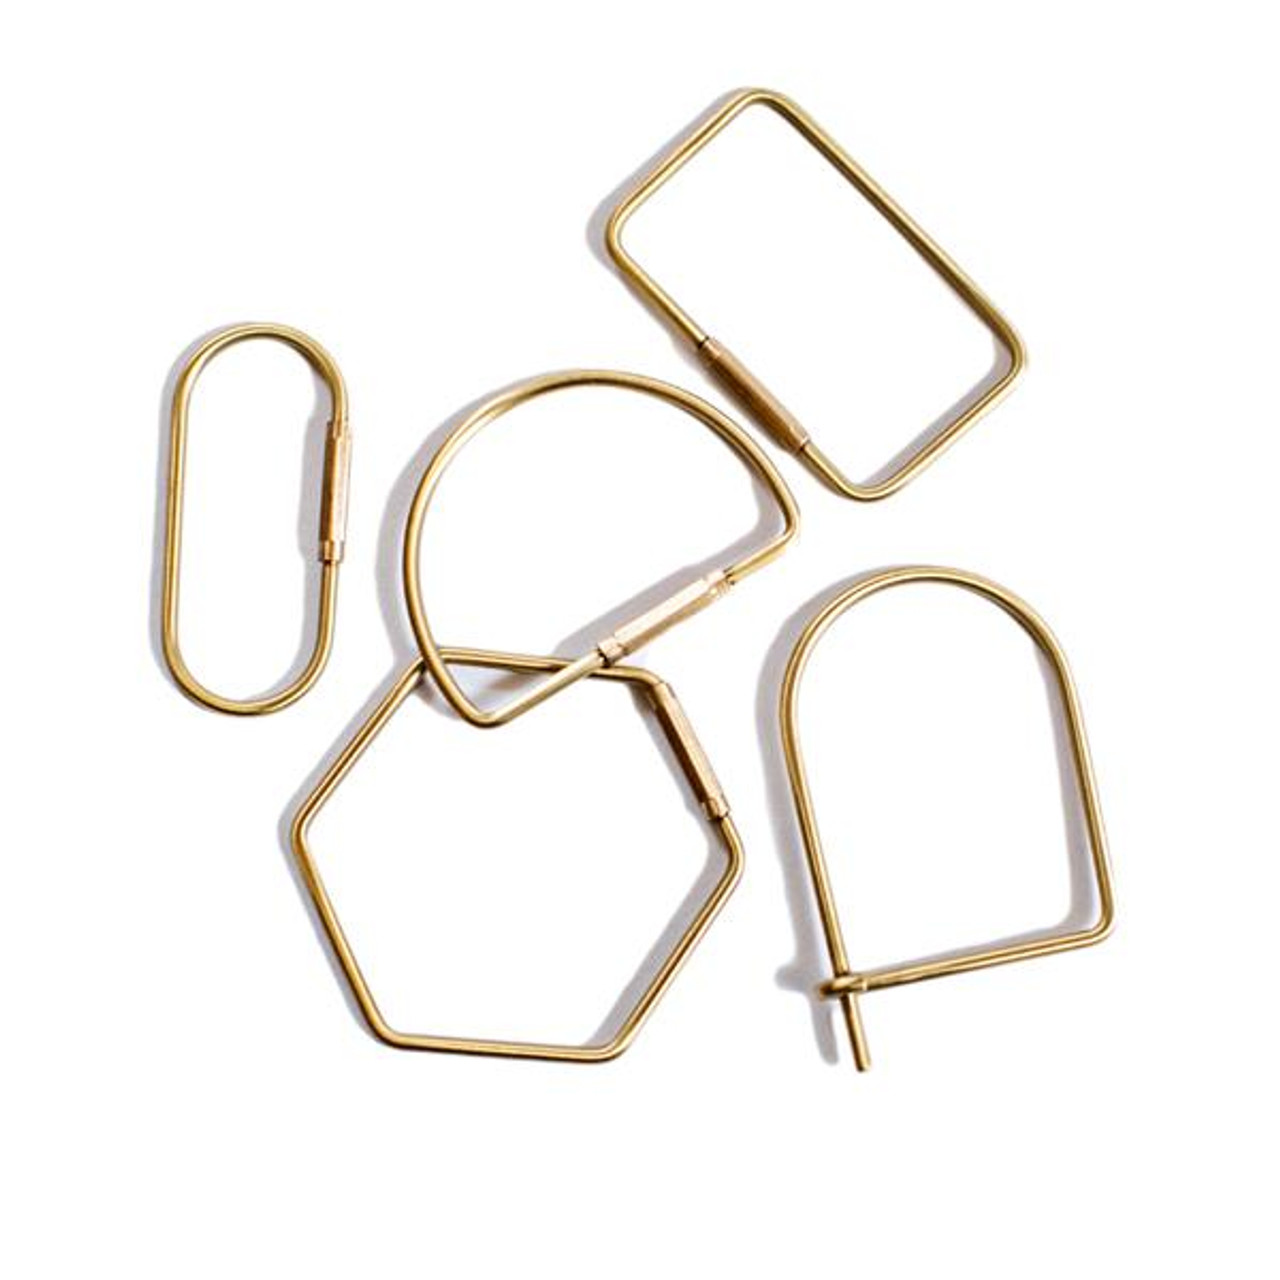 one of each shaped brass keychains